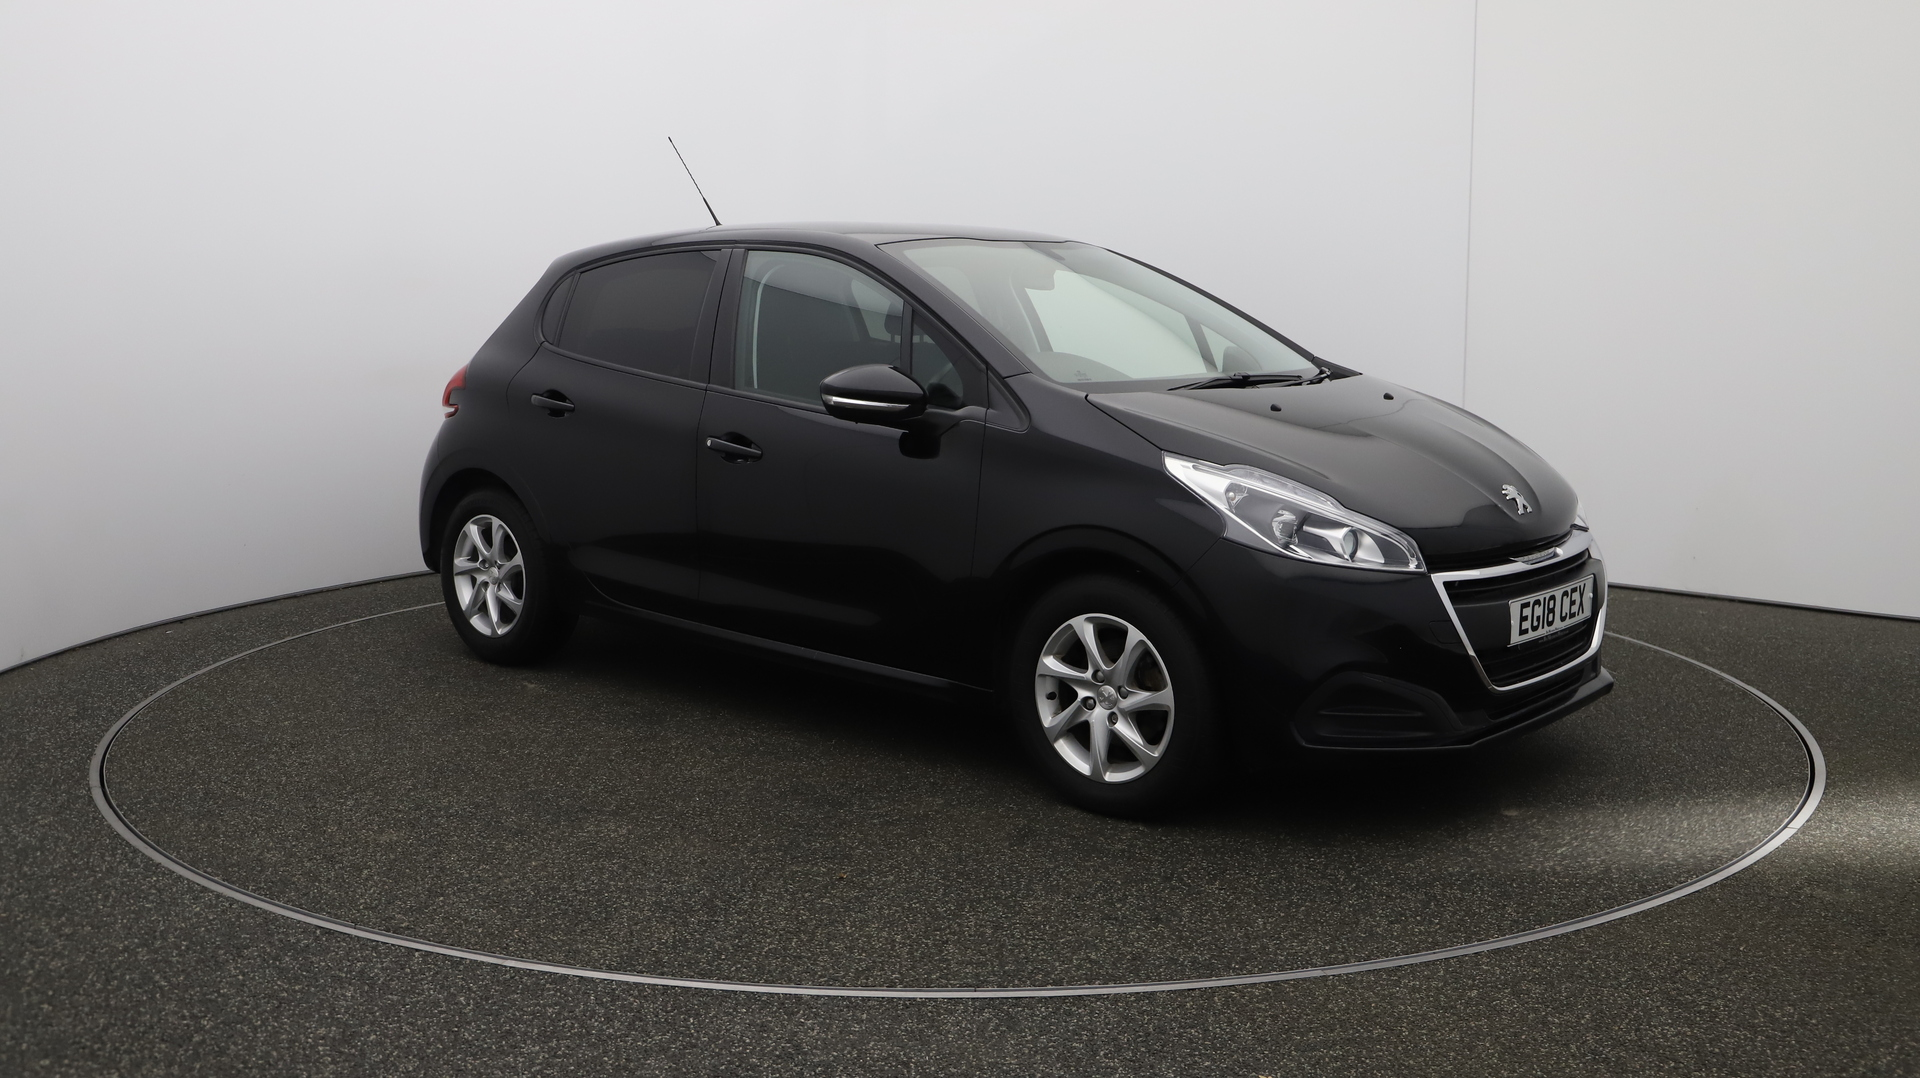 Peugeot 208 ACTIVE Service History